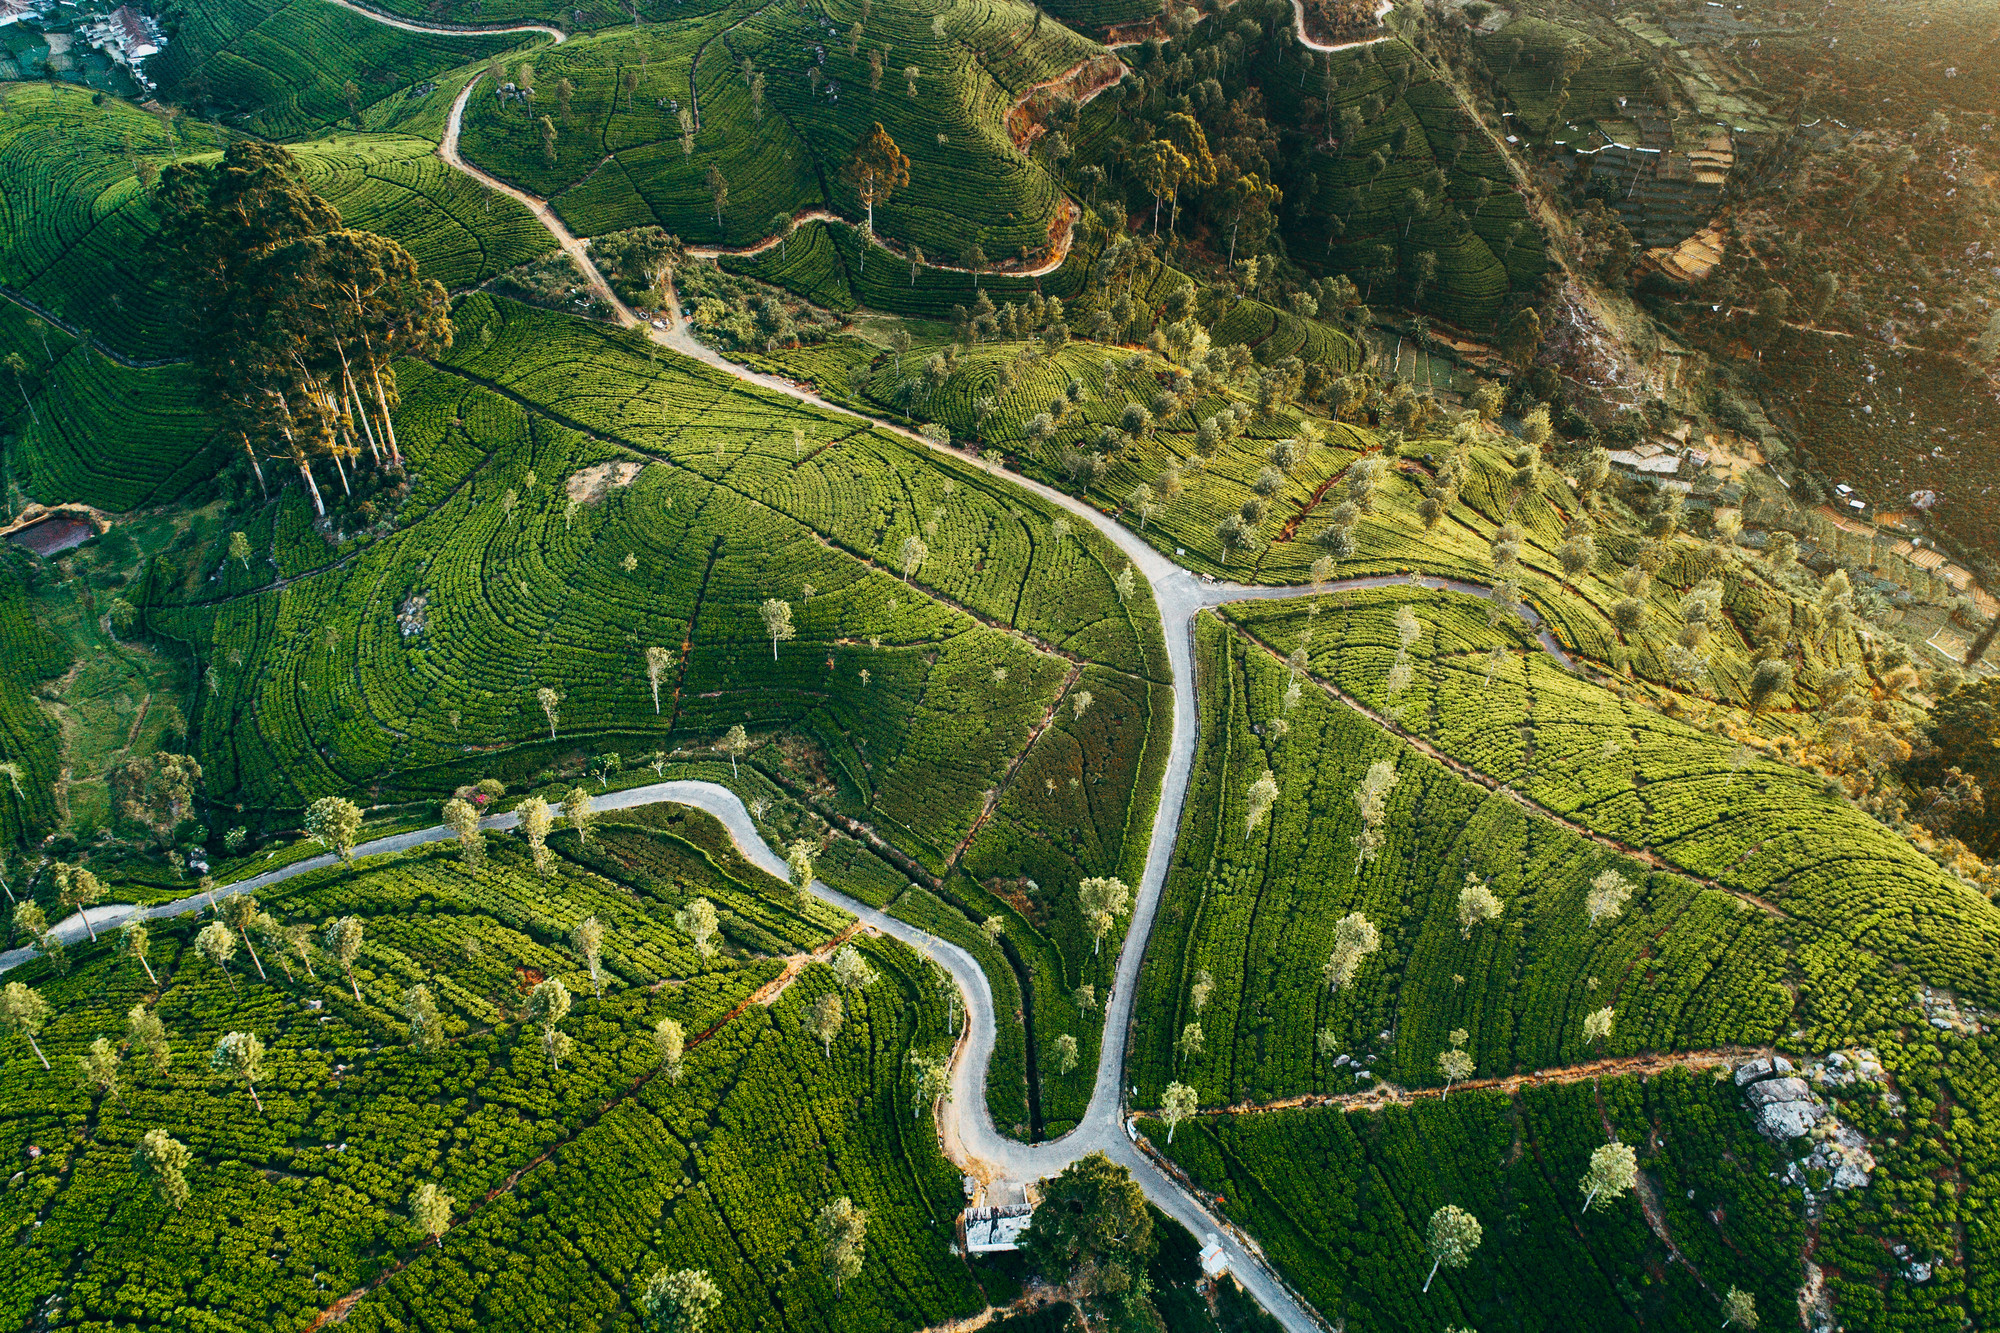 Aerial view on green tea plantation in mountains in Sri Lanka.